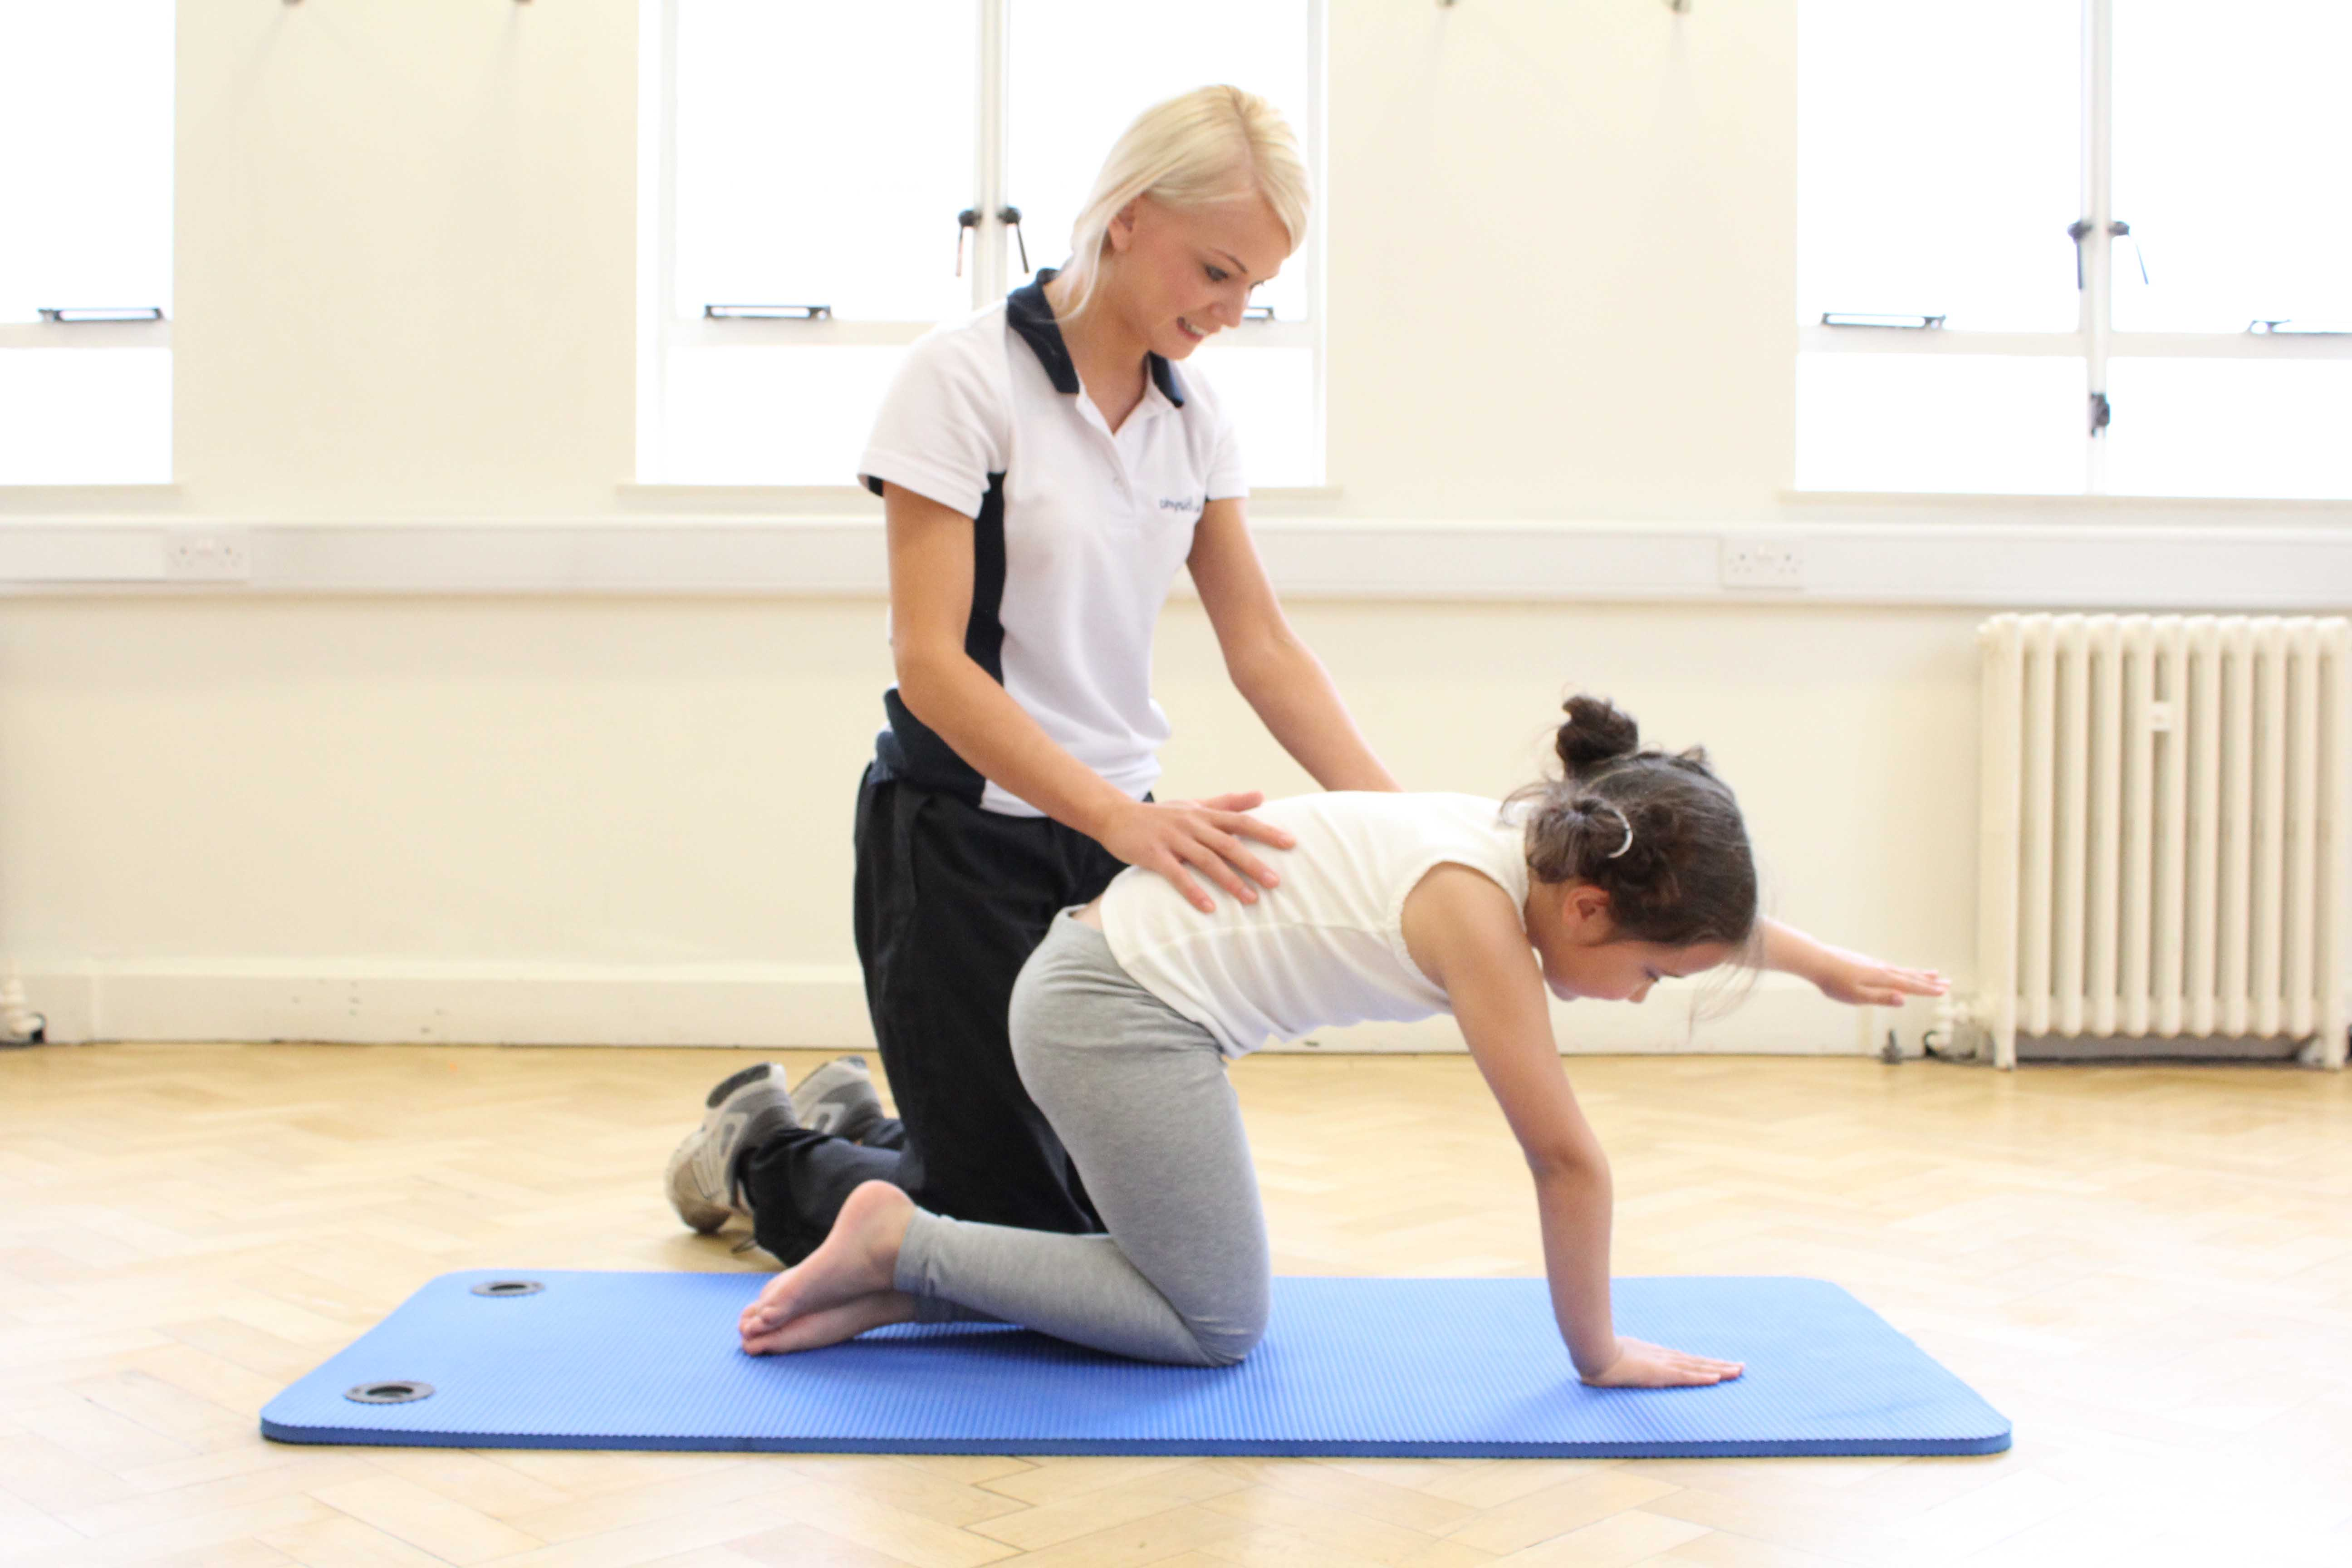 Paediatric physiotherapist supervising mobility exercises to achieve developmental milestones